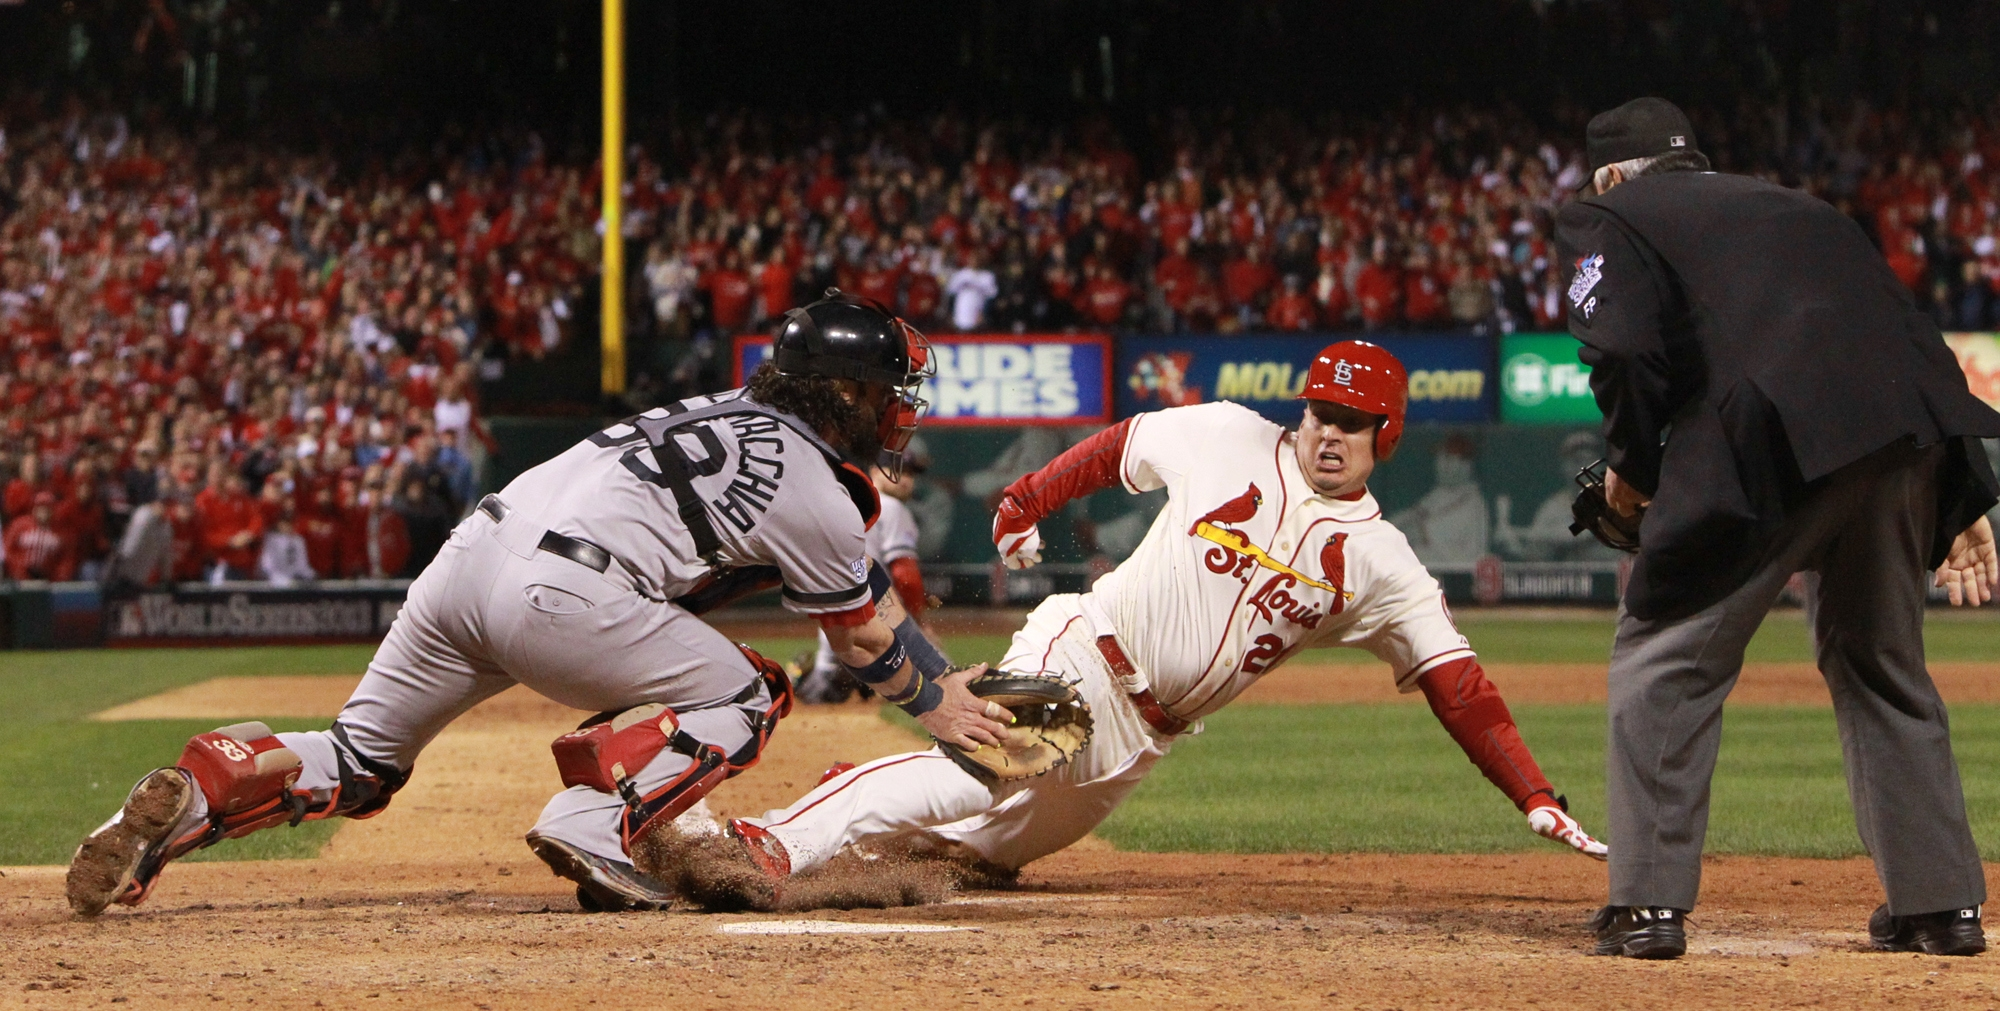 The Cardinals' Allen Craig is tagged by Boston Red Sox catcher Jared Saltalamacchia but he is ruled safe with the game-winning run due to interference when he tried to leave third base in the ninth inning during Game Three on Saturday night.